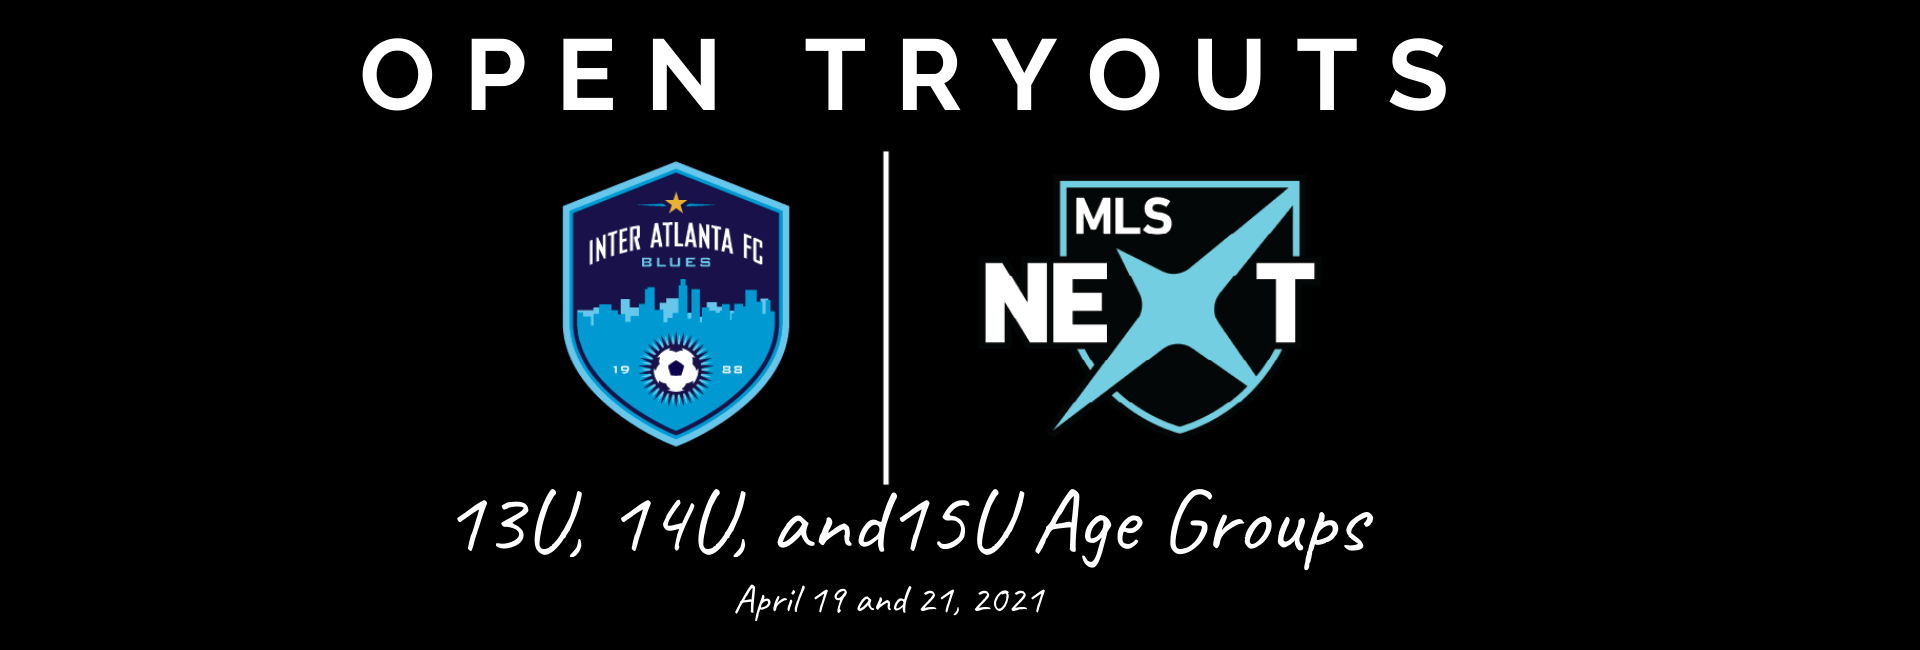 MLS Next Open Tryouts 13U-15U: April 19 & 21